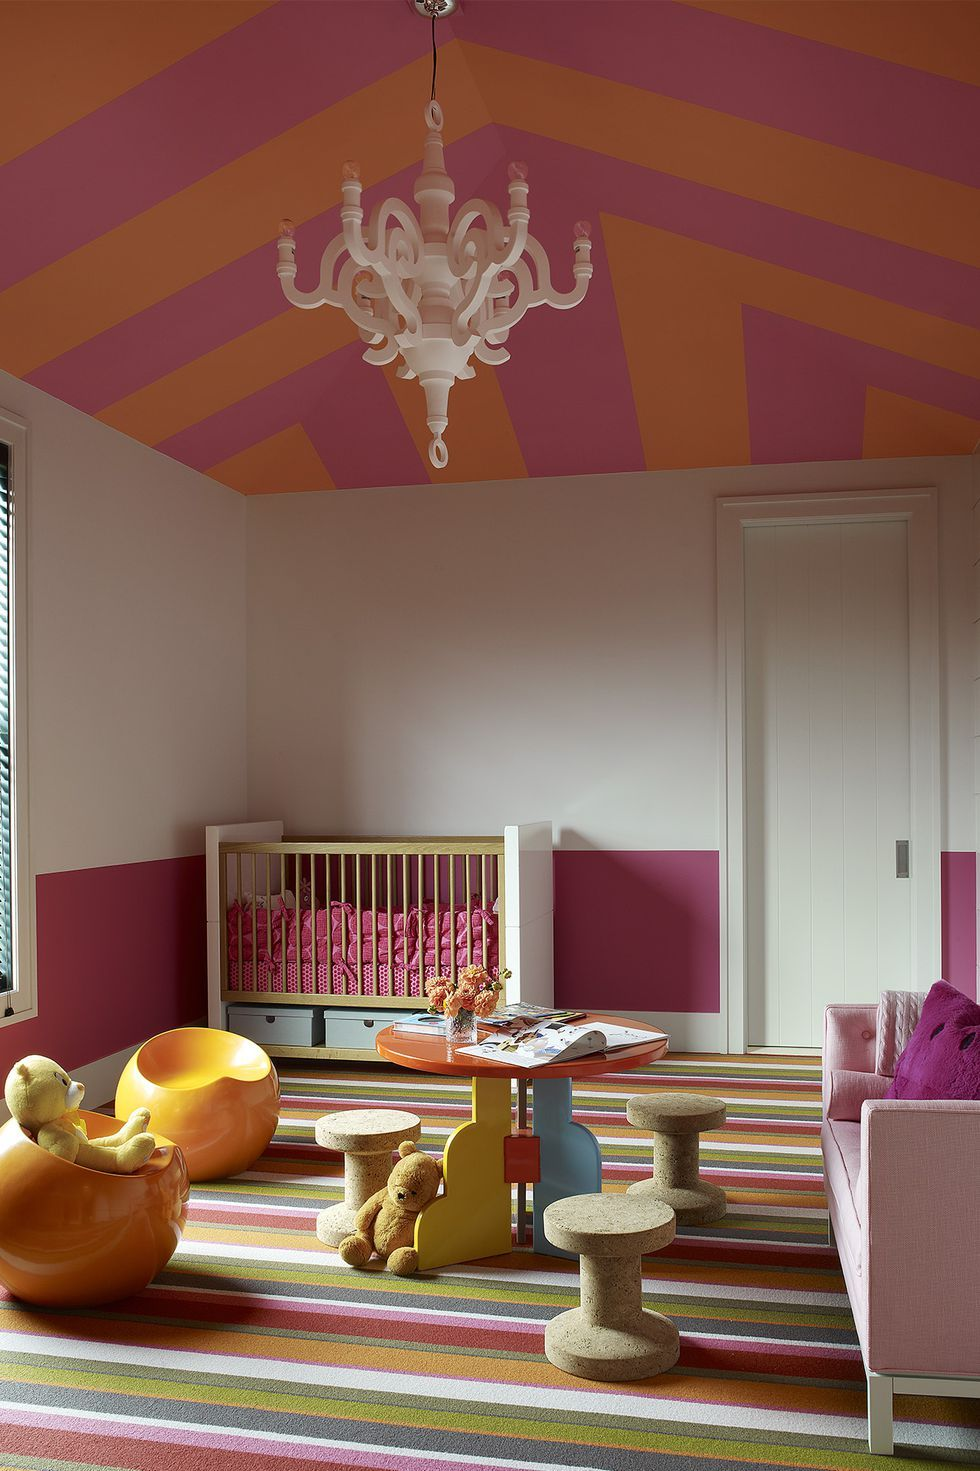 Take A Picture Of A Room And Design It App: Ceiling Design Ideas To Take A Room To The Next Level